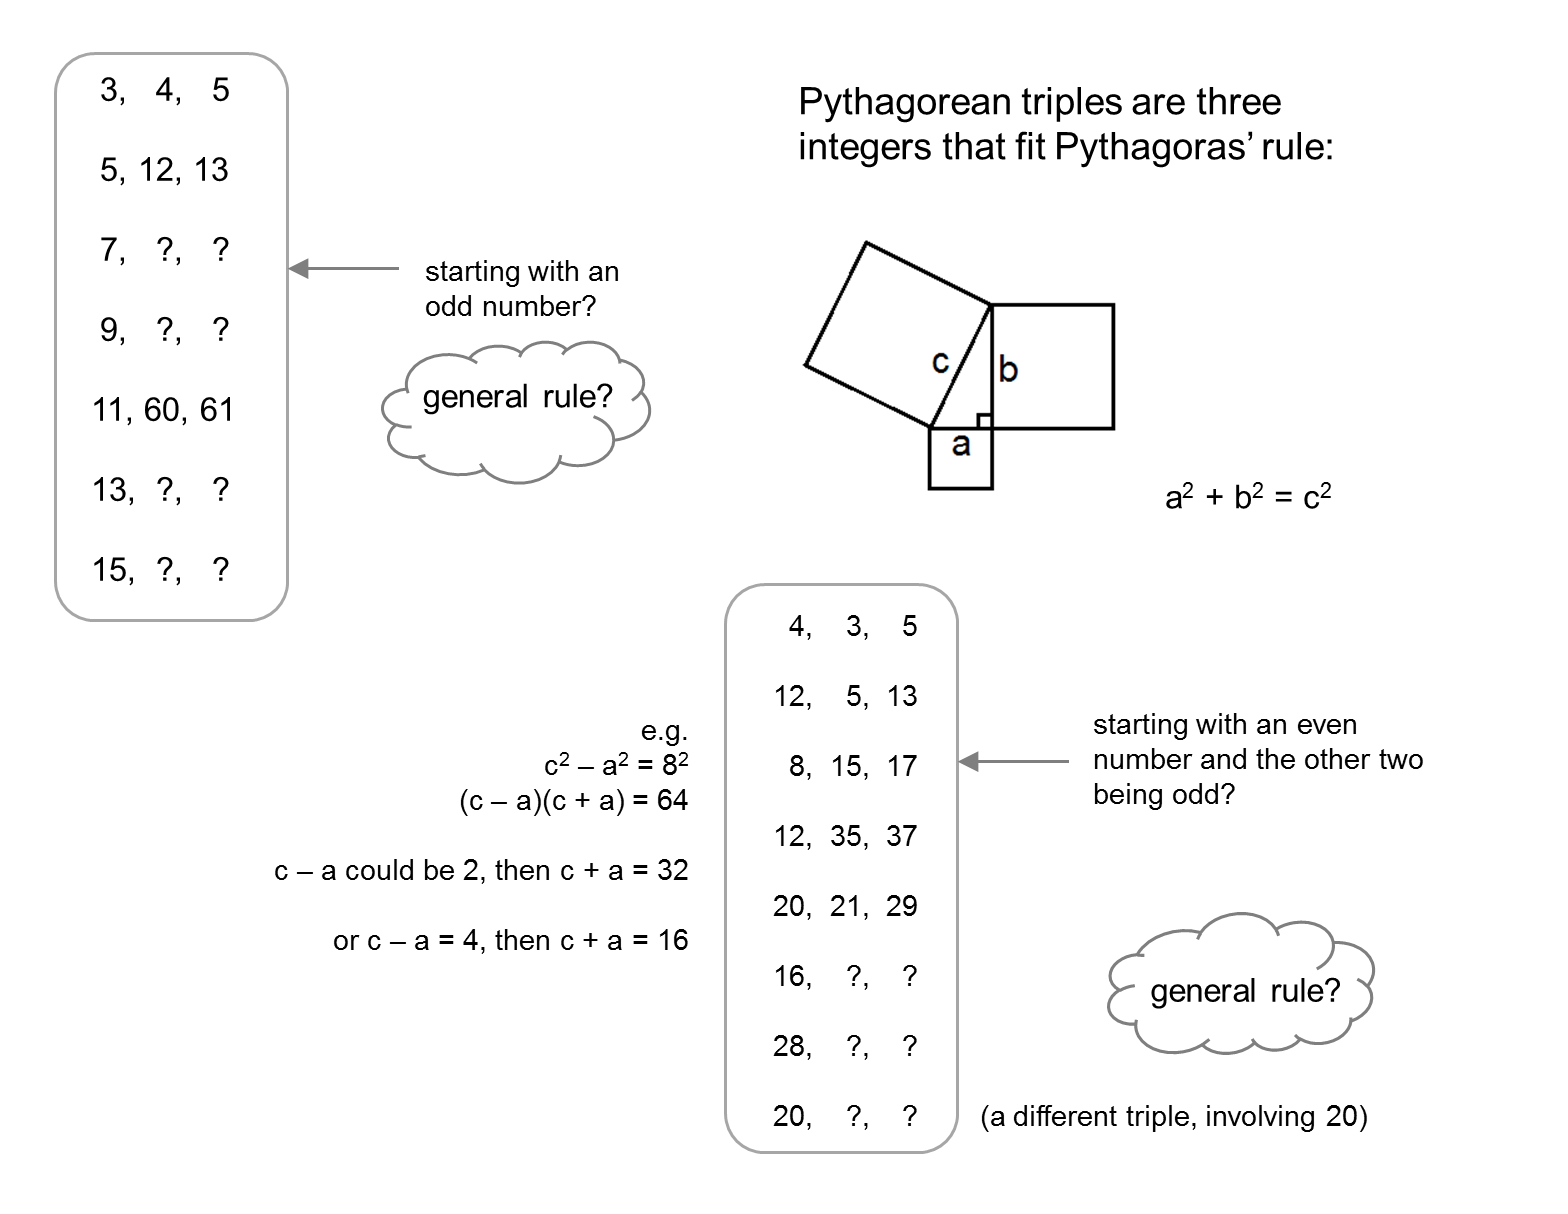 Printables. Pythagorean Triples Worksheet. Gozoneguide Thousands  worksheets, printable worksheets, grade worksheets, and multiplication Basic Pythagorean Theorem Worksheet 1214 x 1568